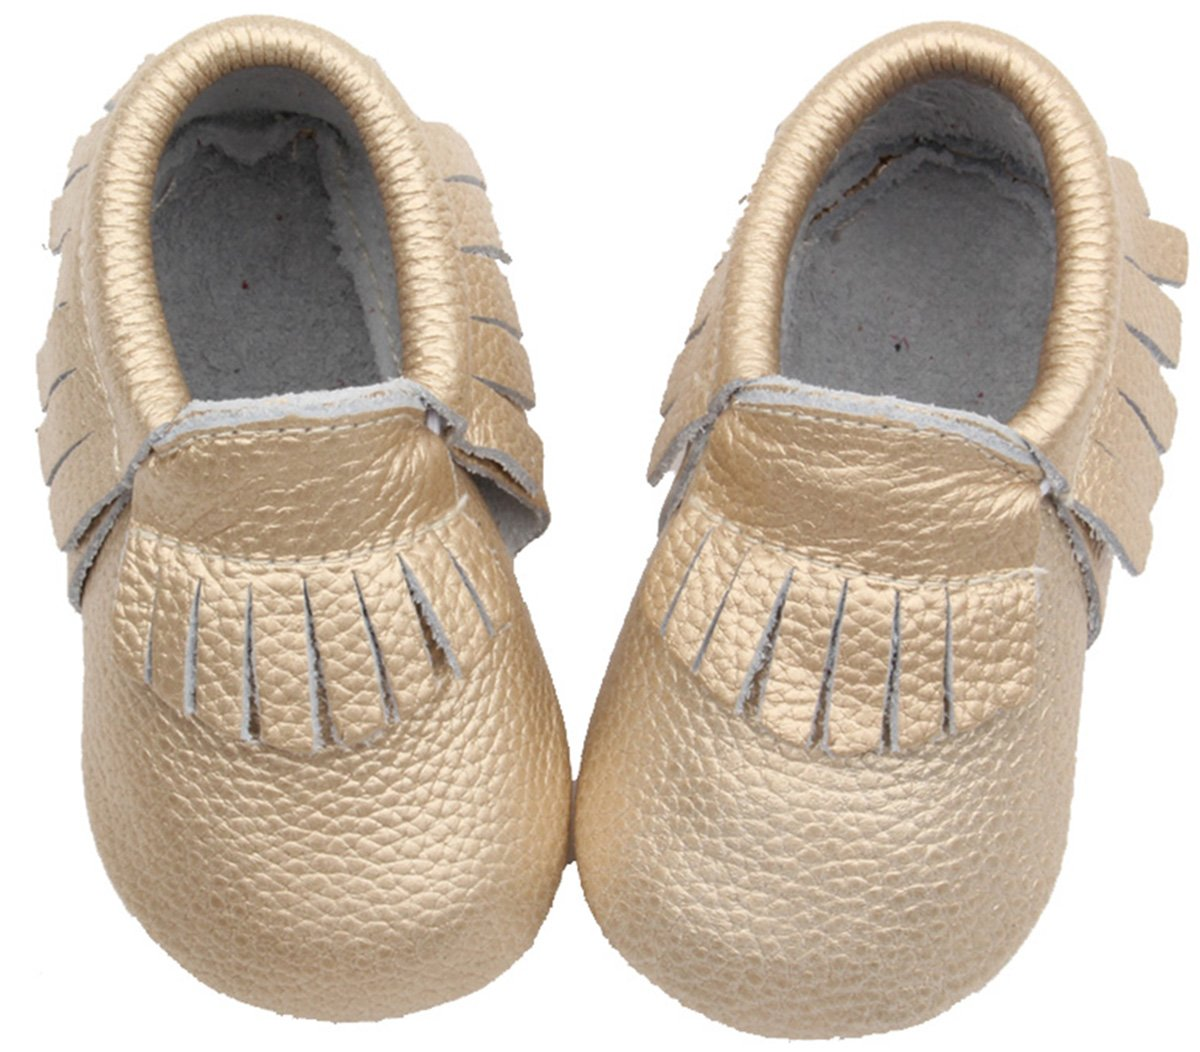 Posh Baby Shoes: Genuine Leather, Hand Made, Durable, Slip-on Baby Moccasins. A Great Gift for Newborns, Infants, and Toddlers. (18-24 Months (5.3 in), Metallic Gold) by Posh Baby Shoes